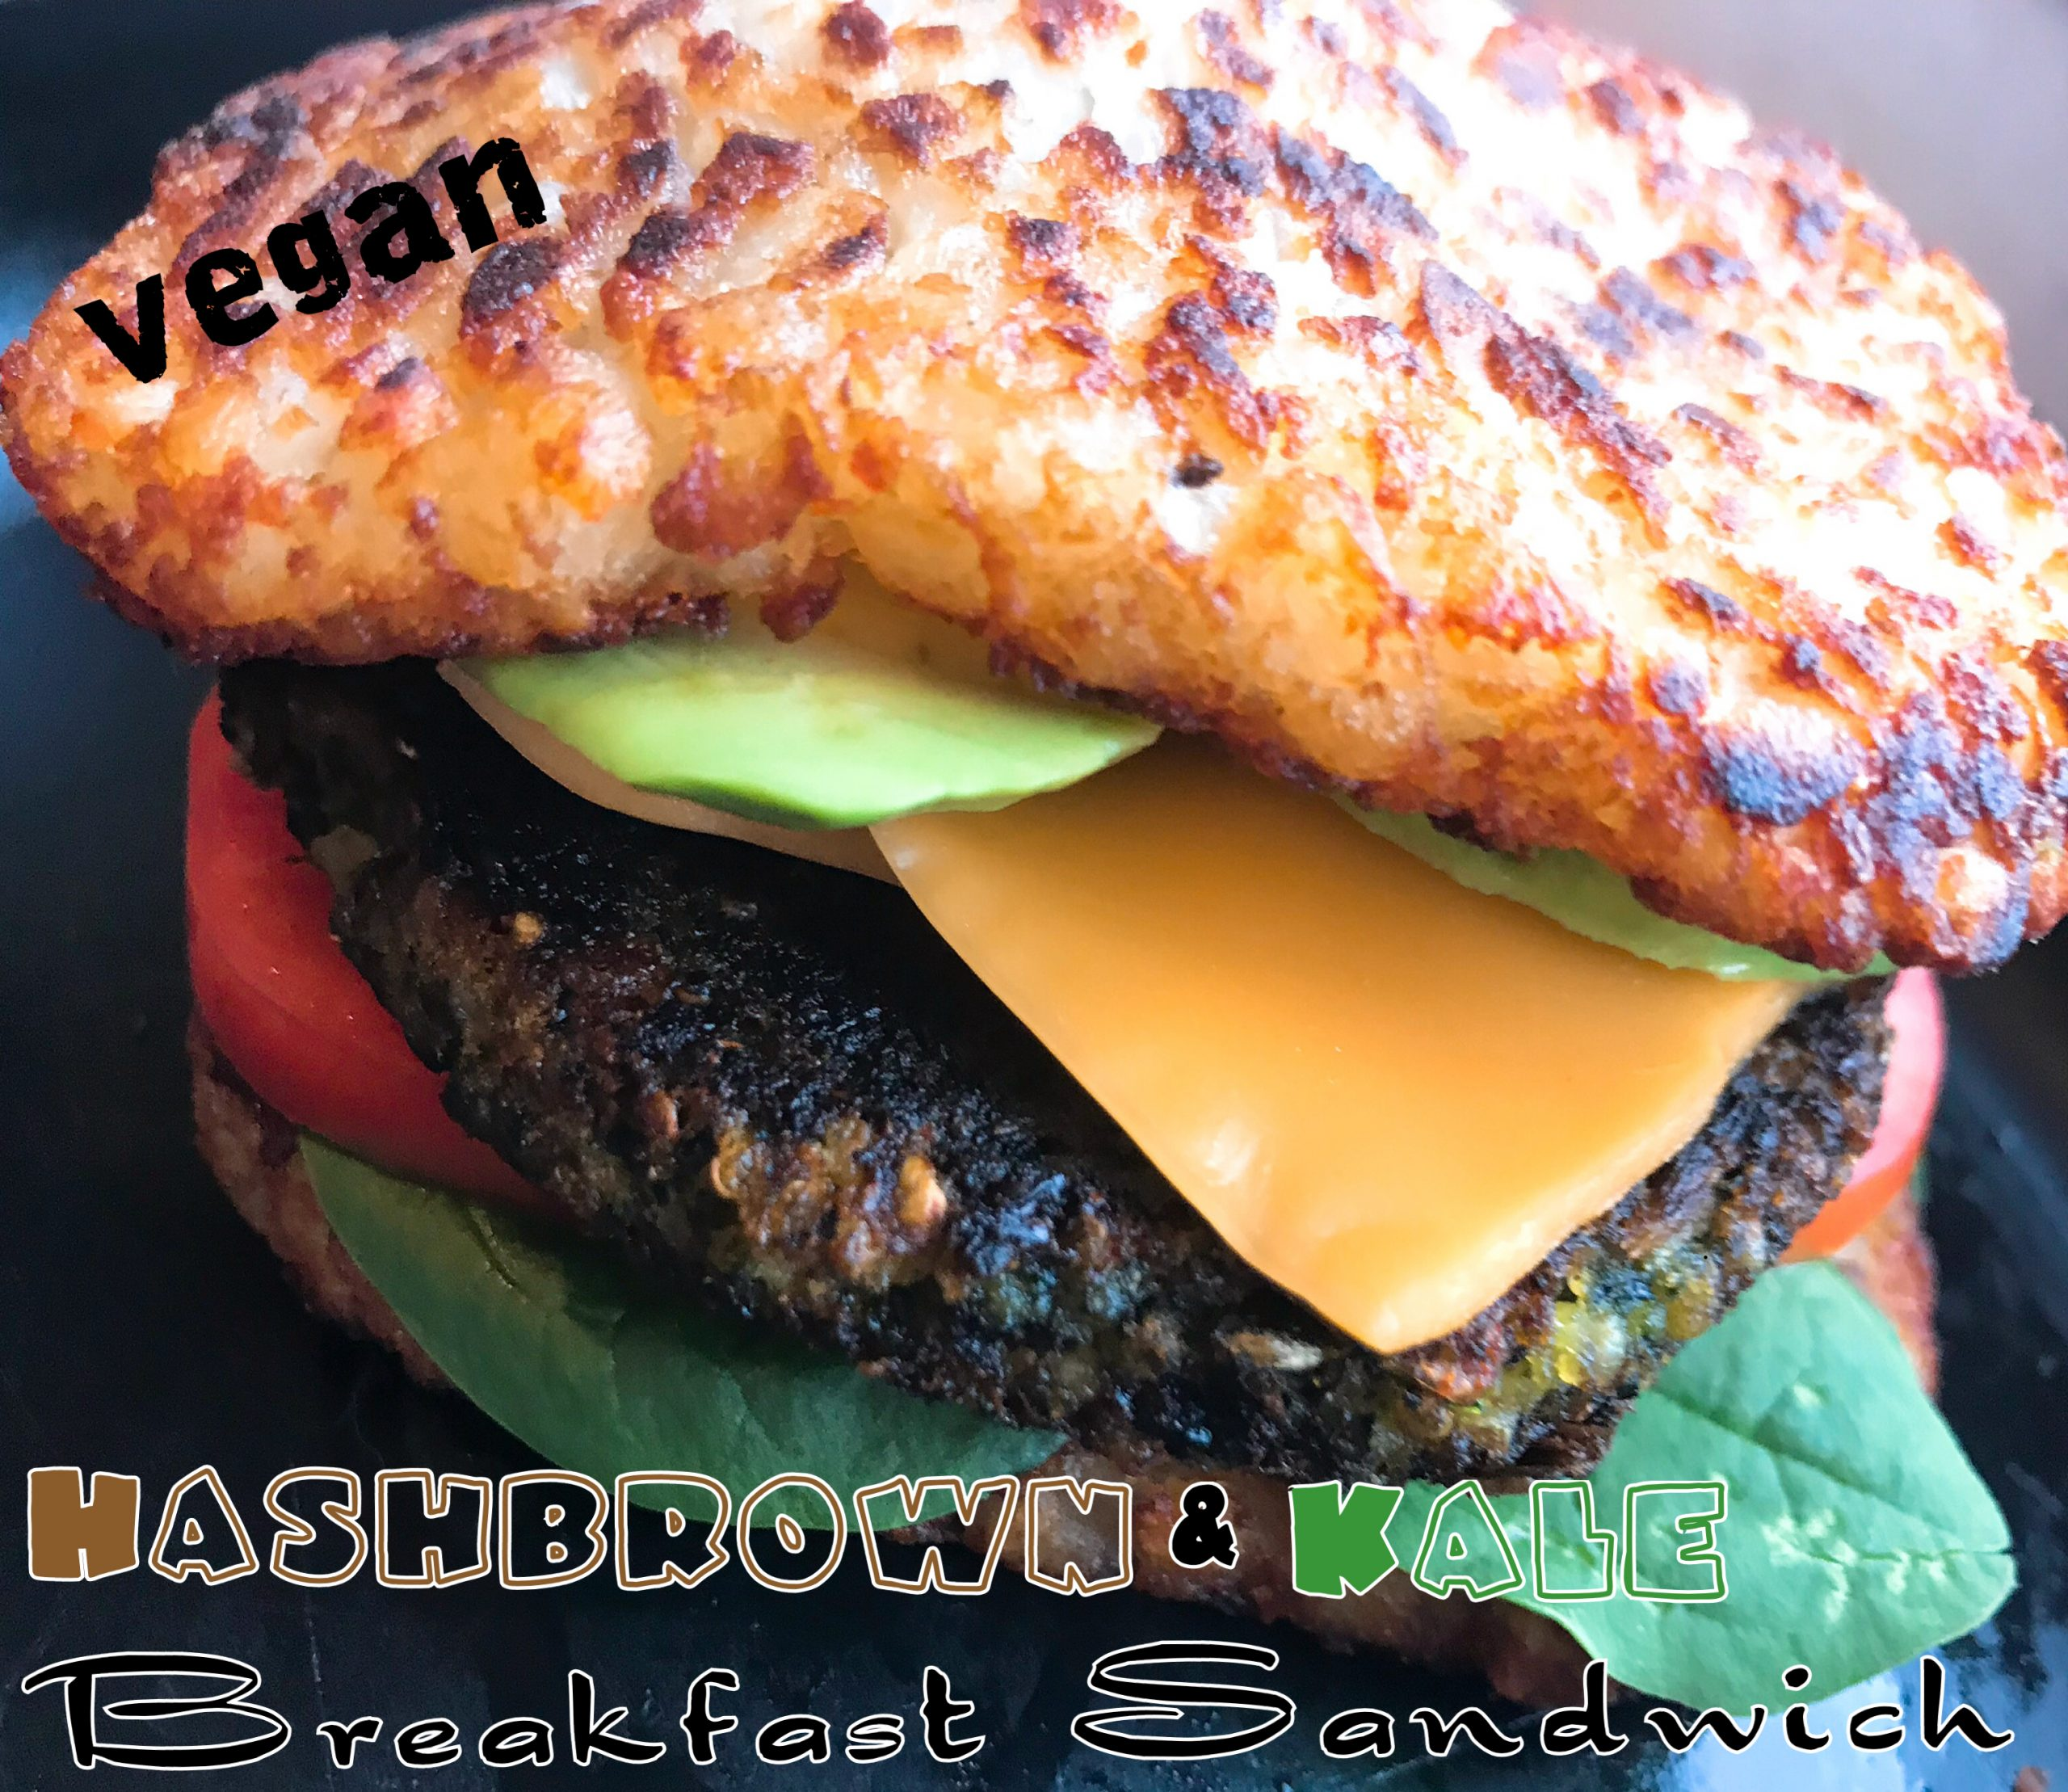 Vegan Hashbrown Kale Breakfast Burger